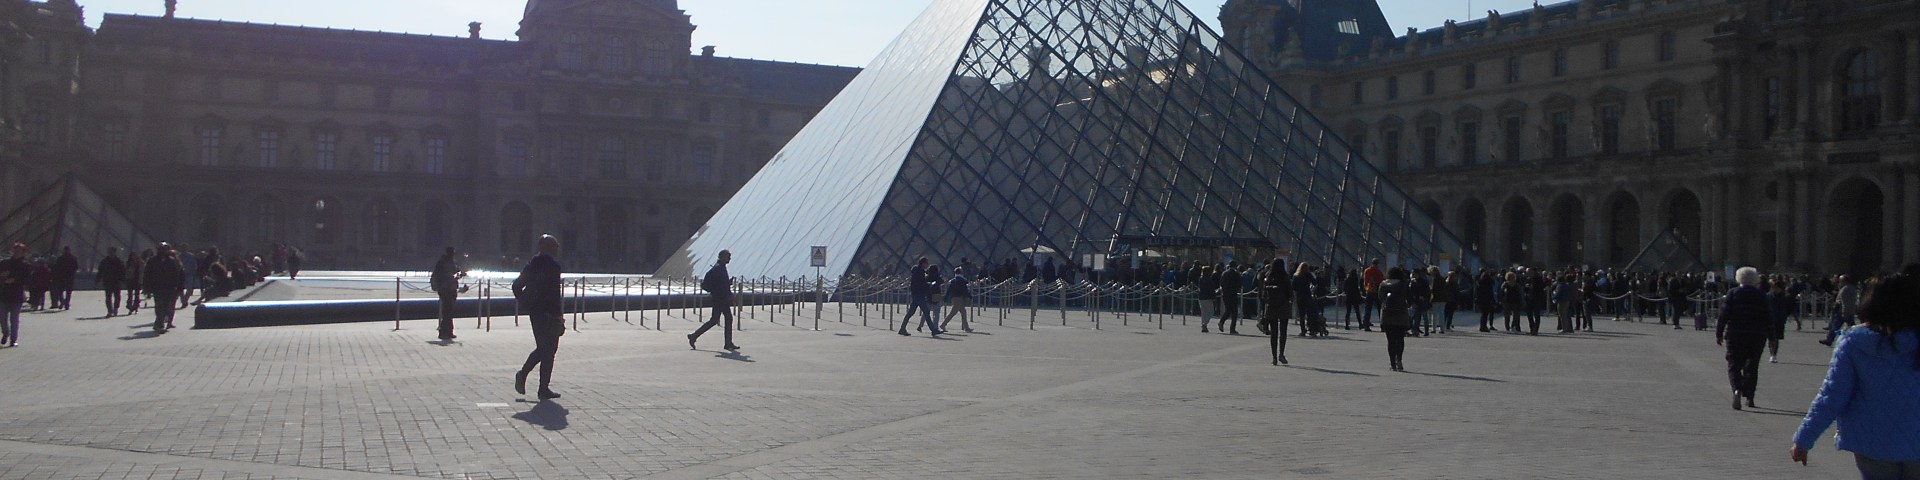 Louvre Pyramid Paris